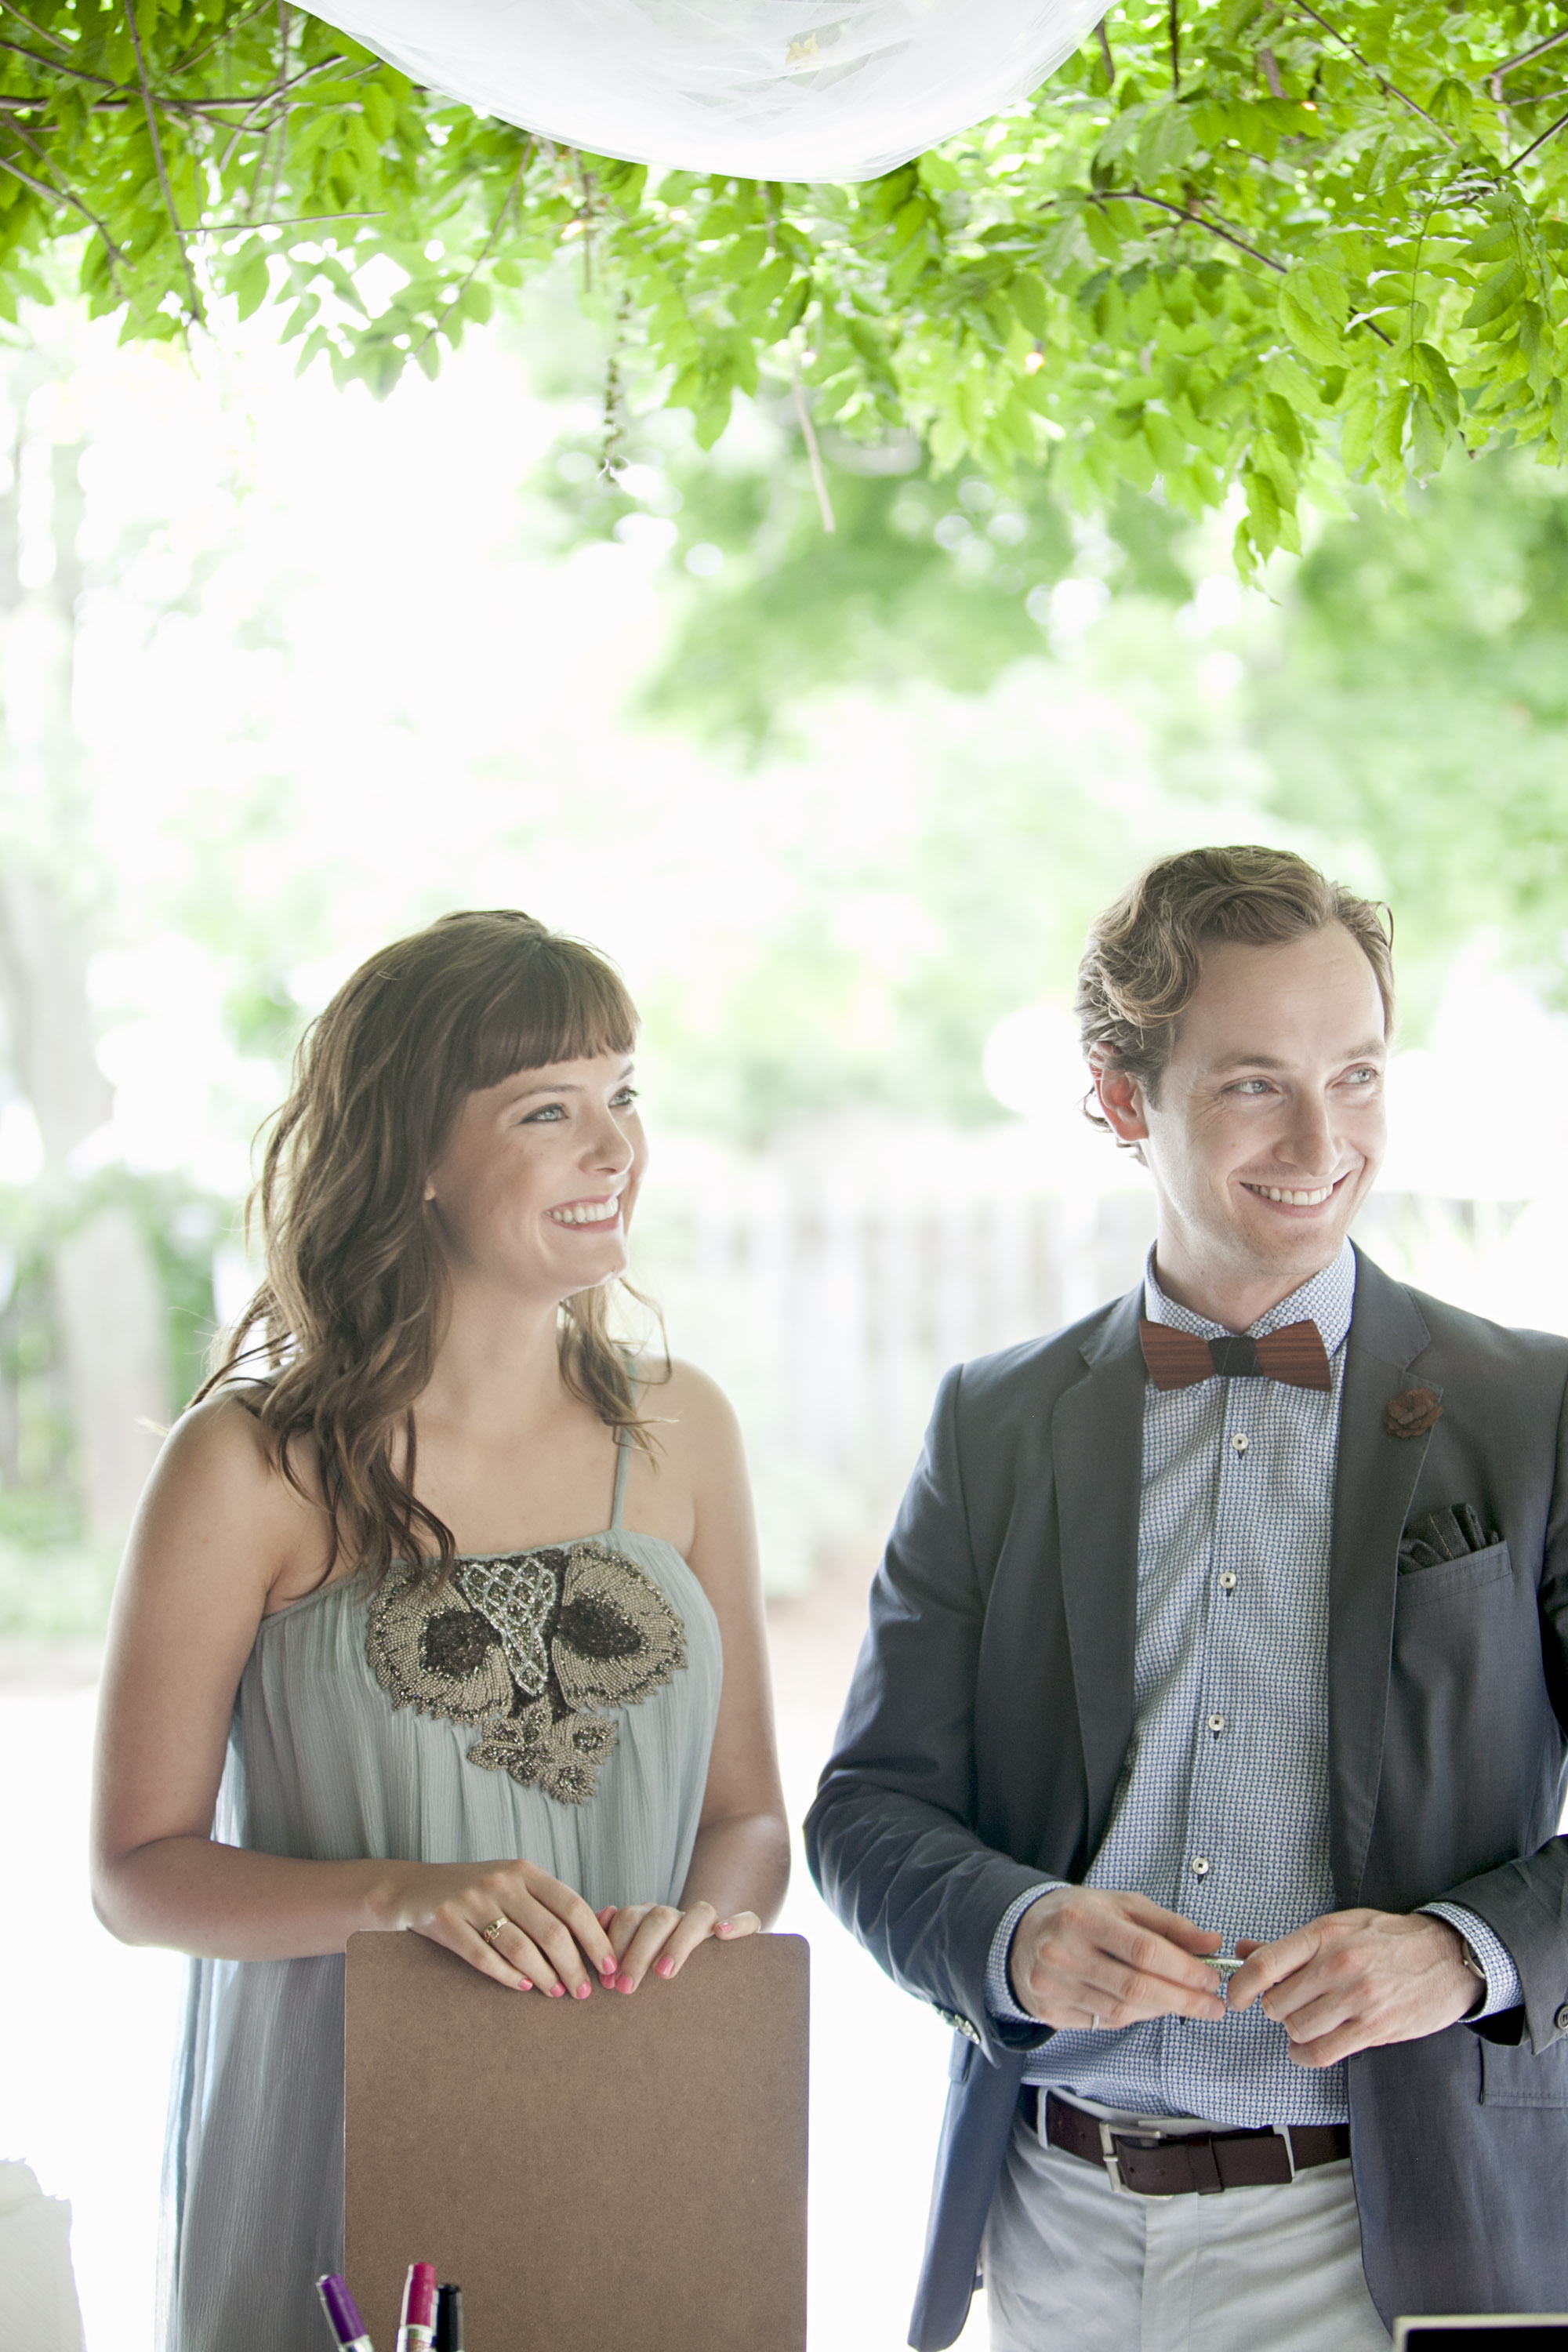 Stylish wedding guests at summer wedding